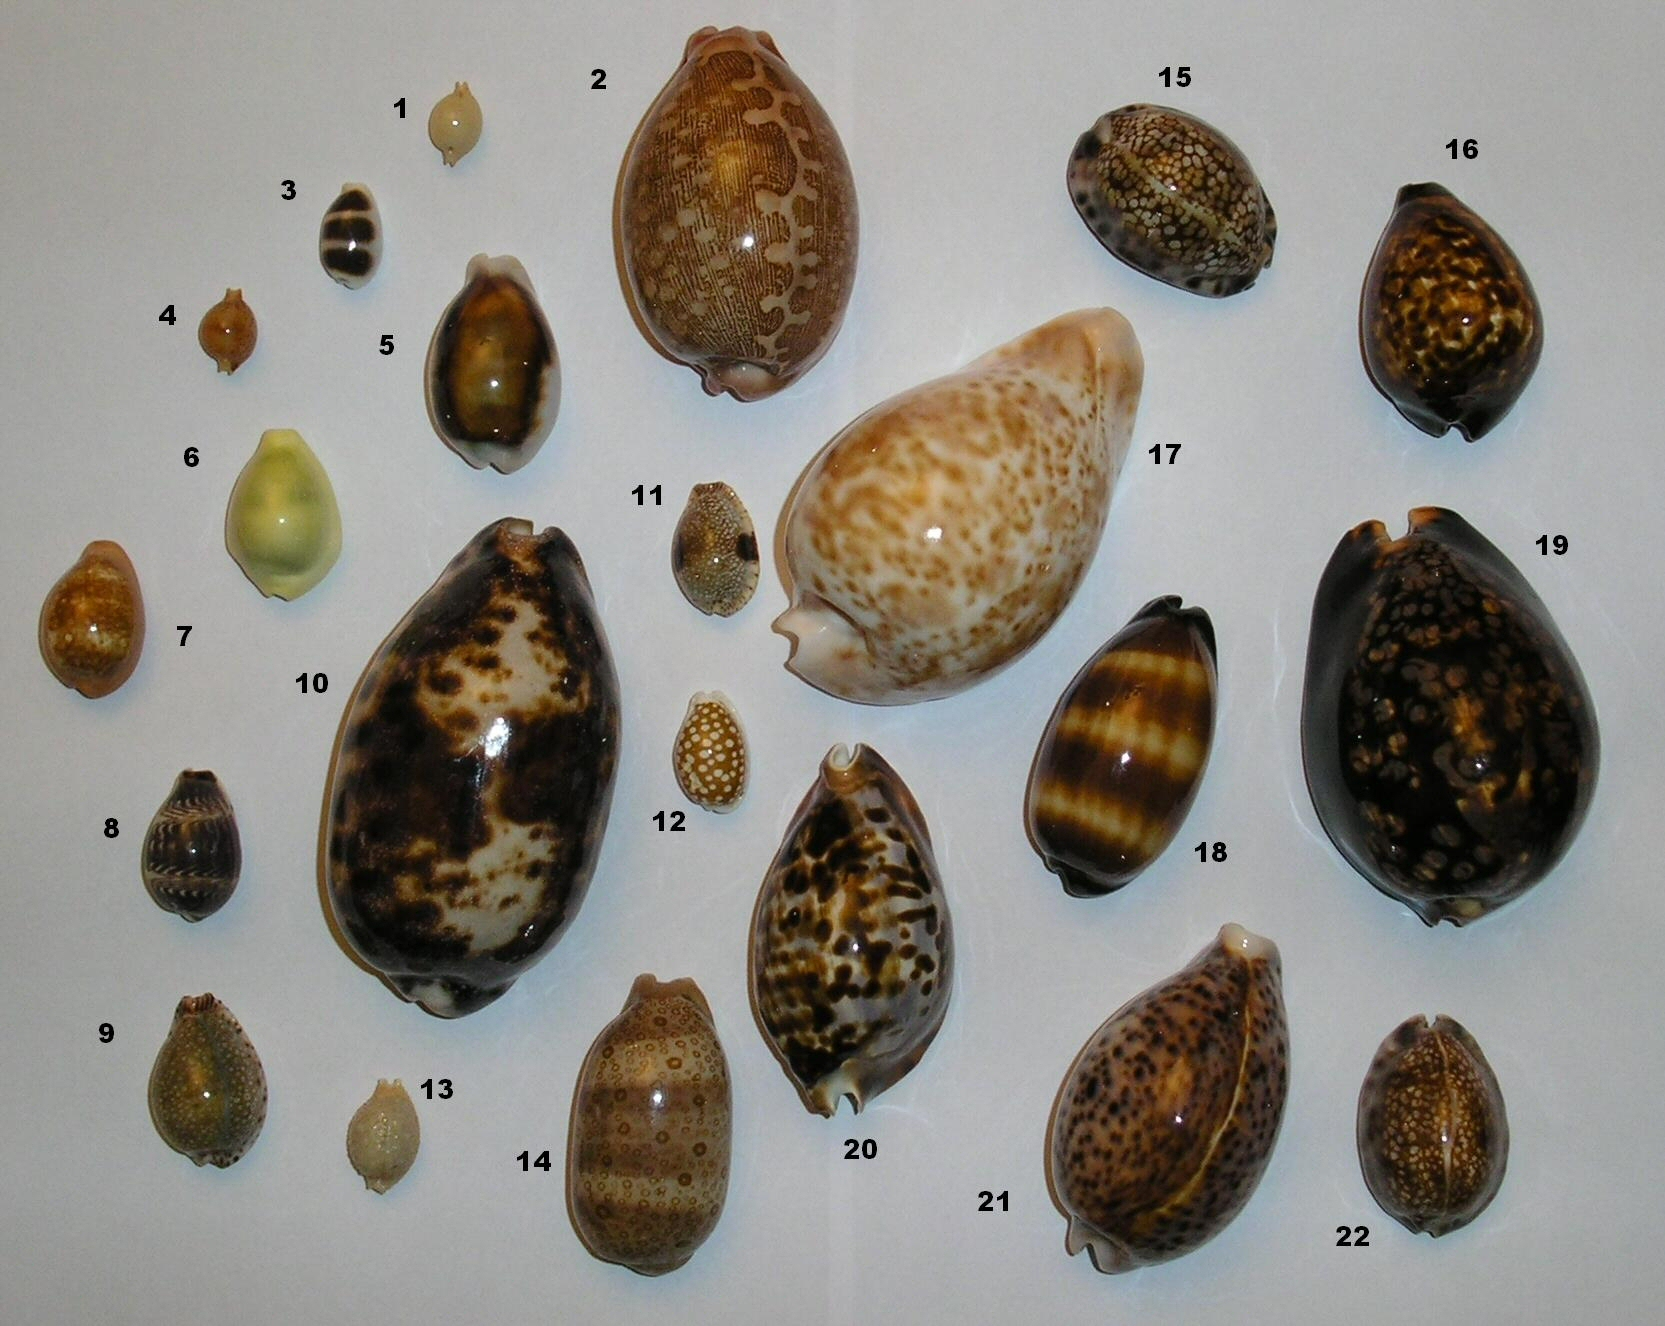 http://upload.wikimedia.org/wikipedia/commons/2/23/Different_cowries_named.jpg